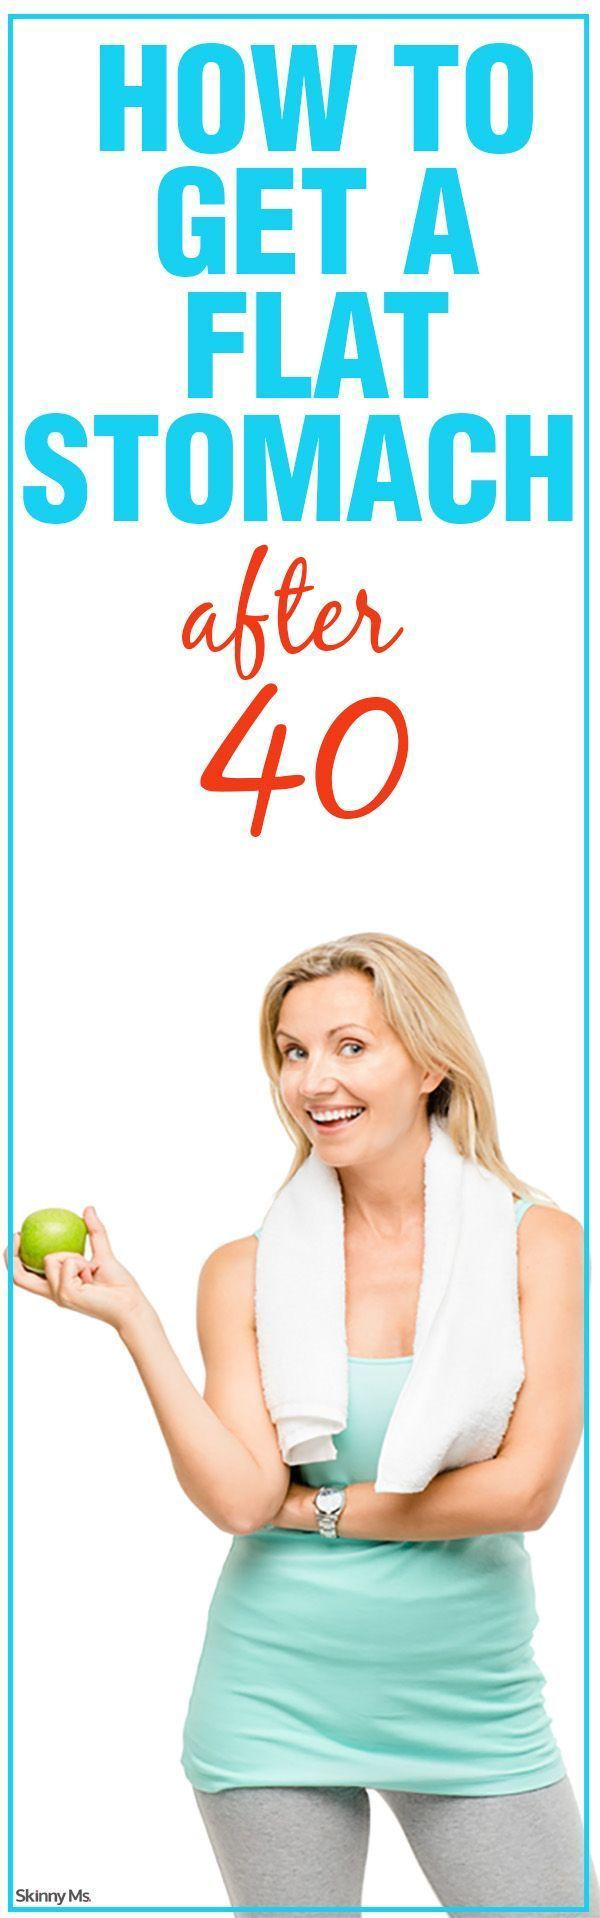 How To Lose Belly Fat For Women Over 40  How to Get a Flat Stomach After 40